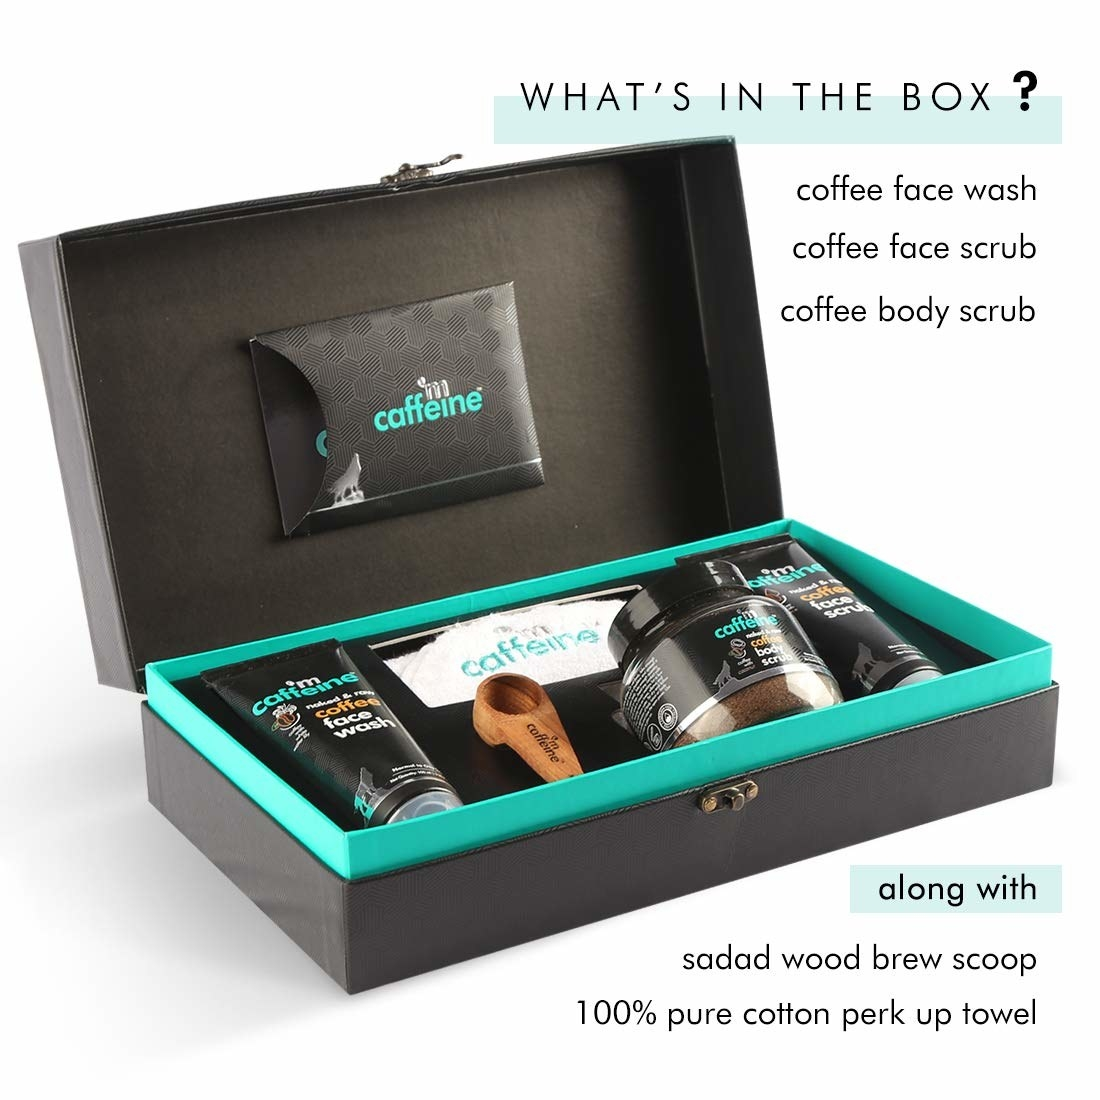 A box of coffee-scented shower products